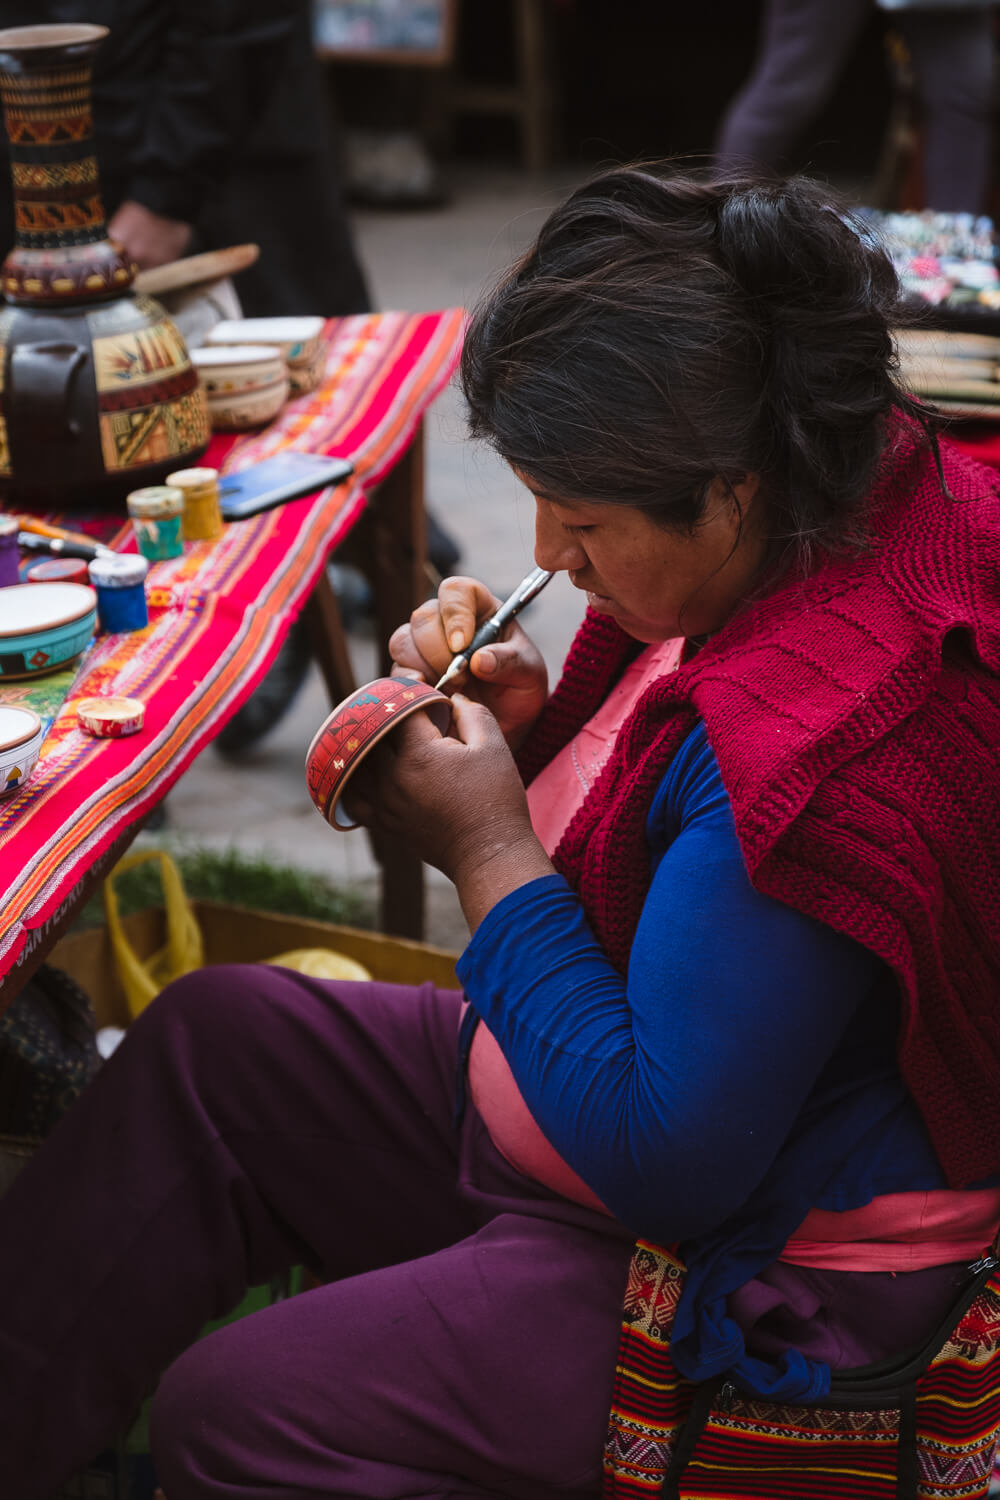 "A woman pains jewelry in the market, Raqch'i. Travel photography and guide by © Natasha Lequepeys for ""And Then I Met Yoko"". #peru #sacredvalley #cusco #laketiticaca #belmondandeanexplorer #perurail #perutrain #luxurytravel #sleepertrain #photoblog #travelblog #travelphotography #fujifilm #andes #travel #travelperu #cuscotolaketiticaca #spiritofthelake #belmond #puno #southamerica"